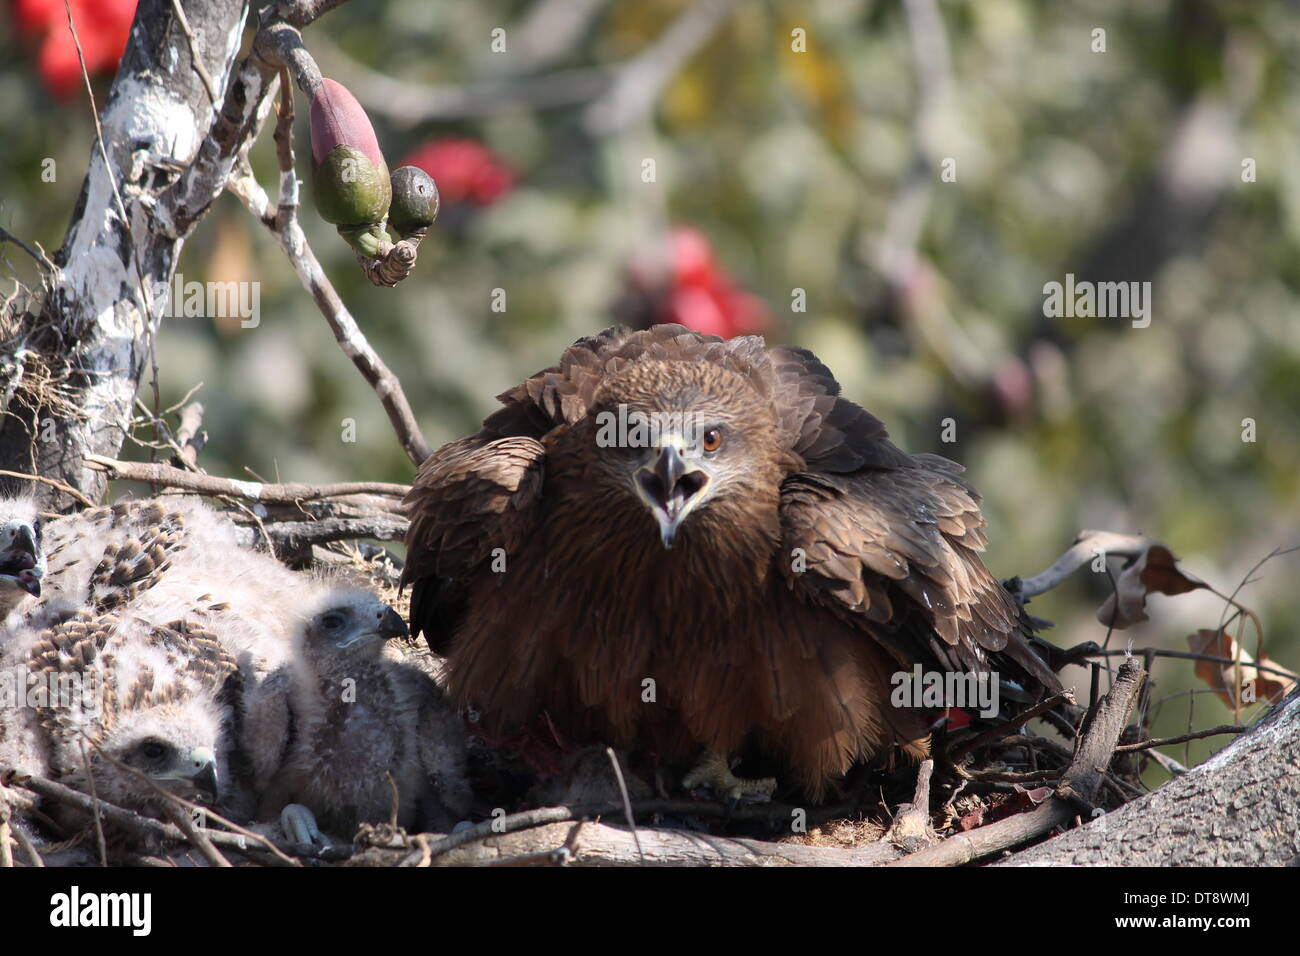 Gandhi Maidan Patna, Bihar, India, February 12th, 2014. Black kite today. She just finished lunch. A little relaxed and will take rest. Credit:  Rupa Ghosh/ Alamy Live News. - Stock Image